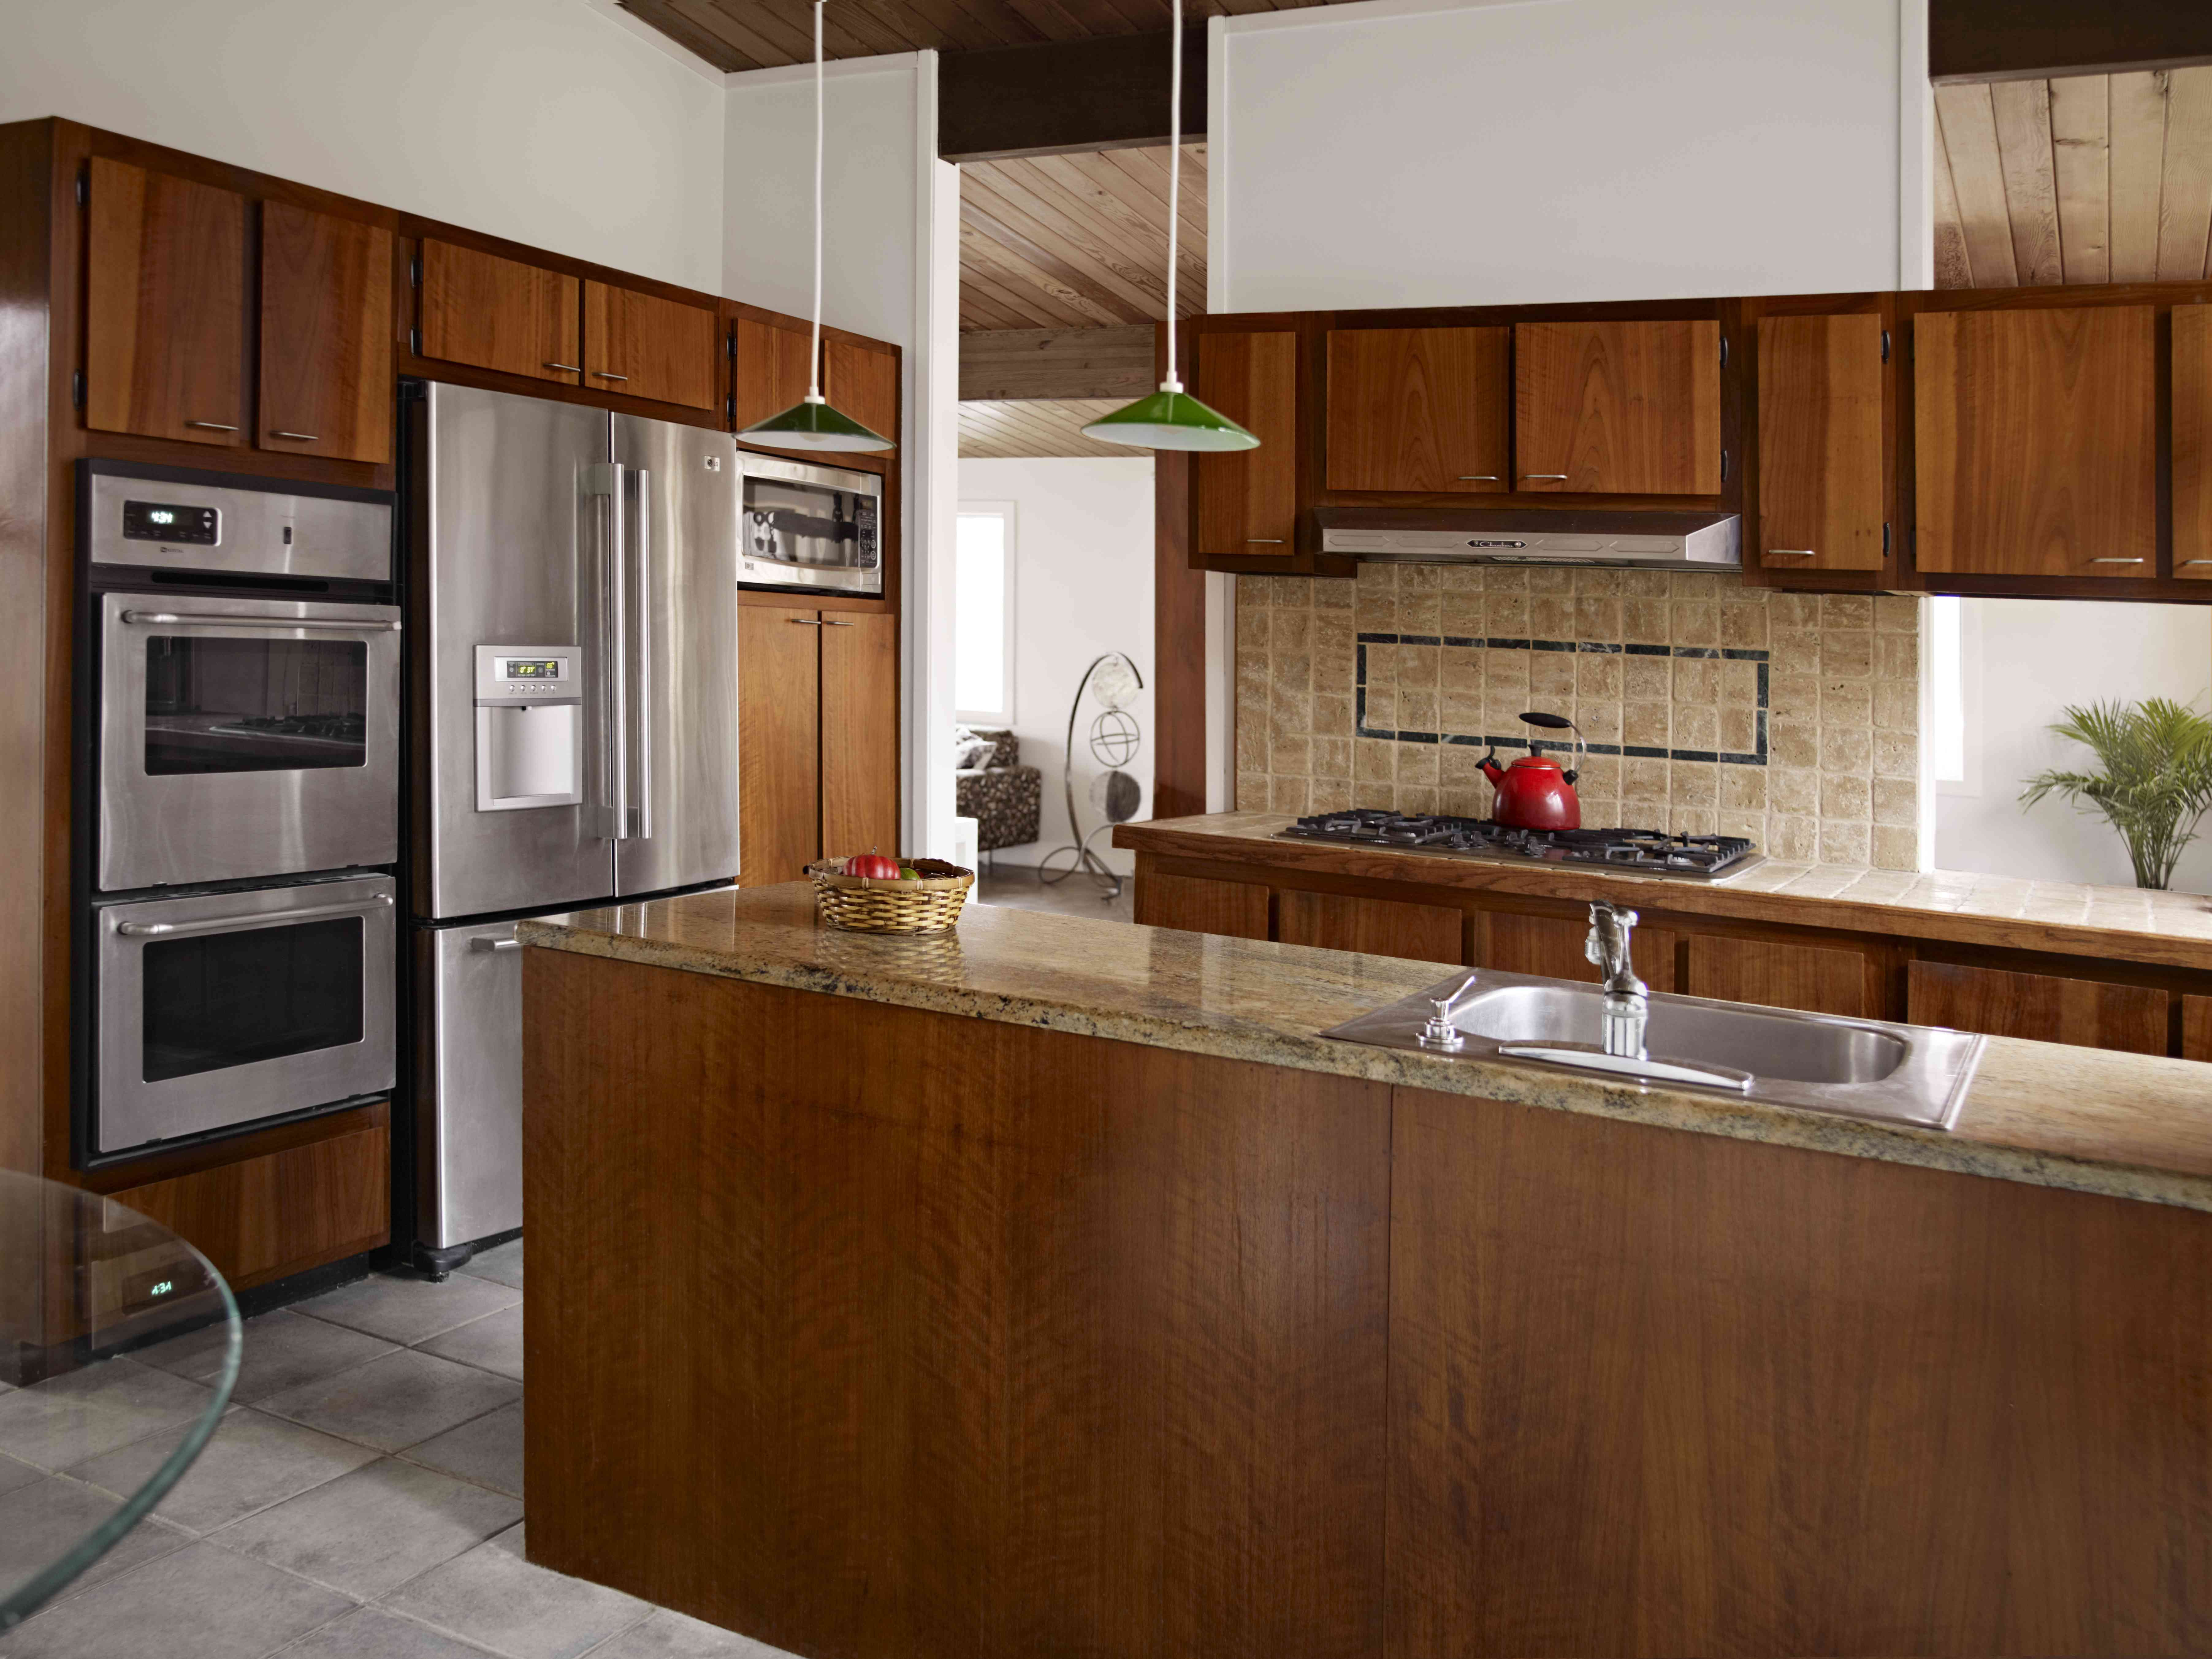 Modern kitchen with wood tone cabinets